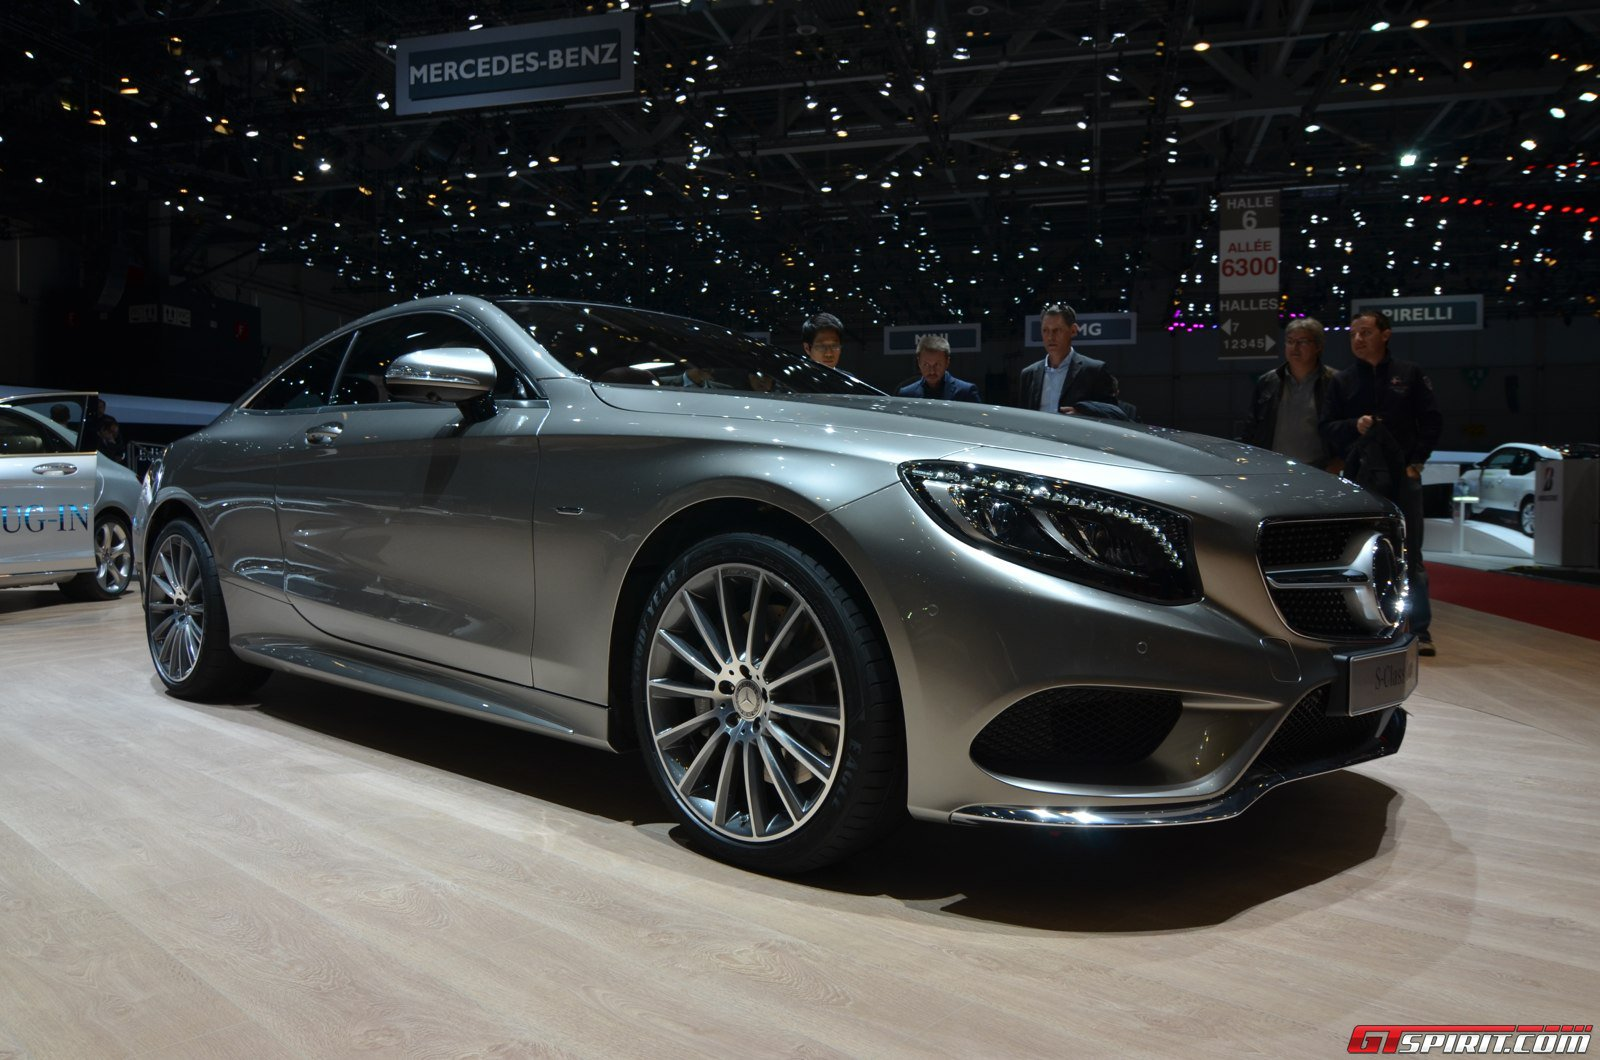 geneva 2014 mercedes benz s 500 coupe gtspirit. Black Bedroom Furniture Sets. Home Design Ideas